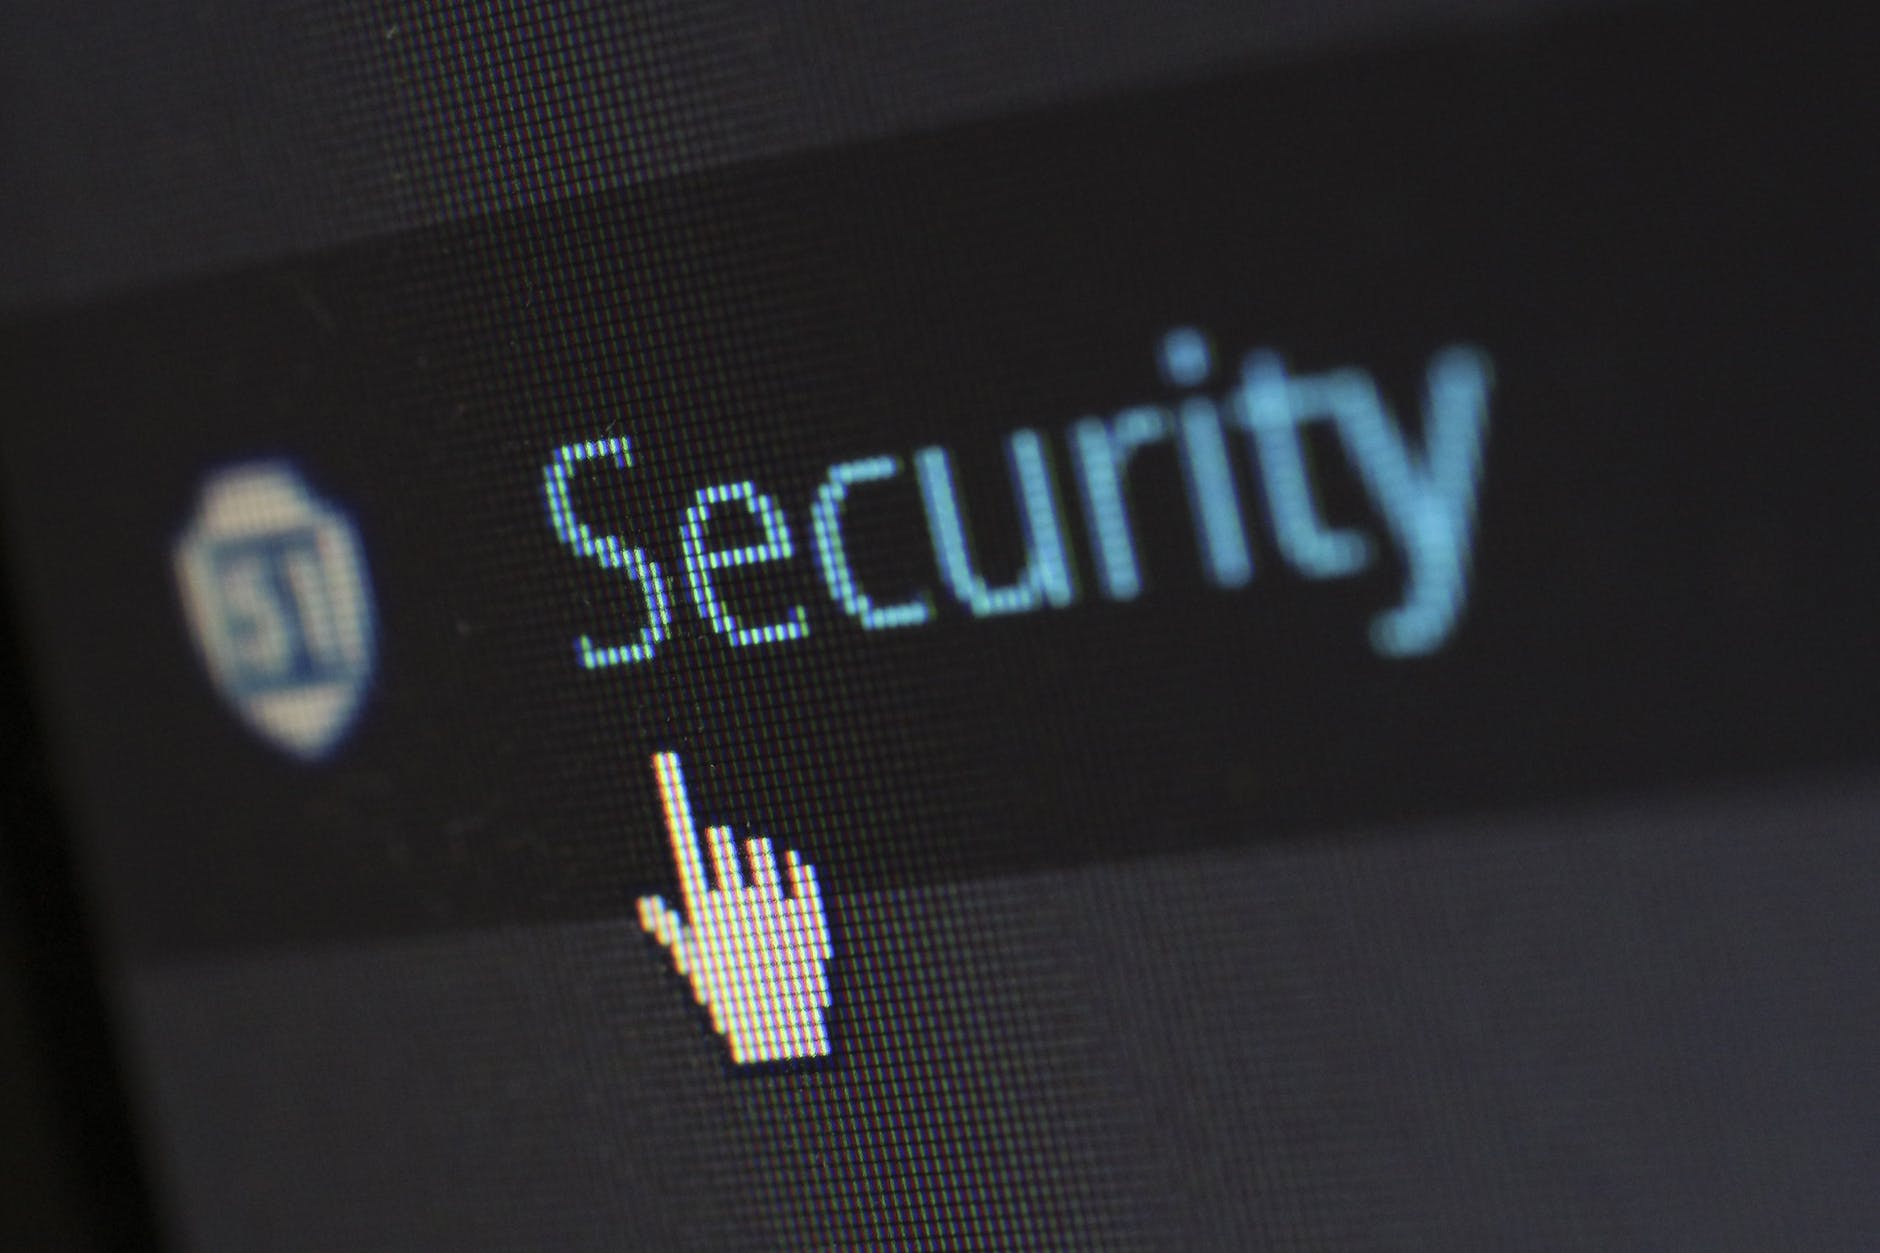 How cybersecurity helps?